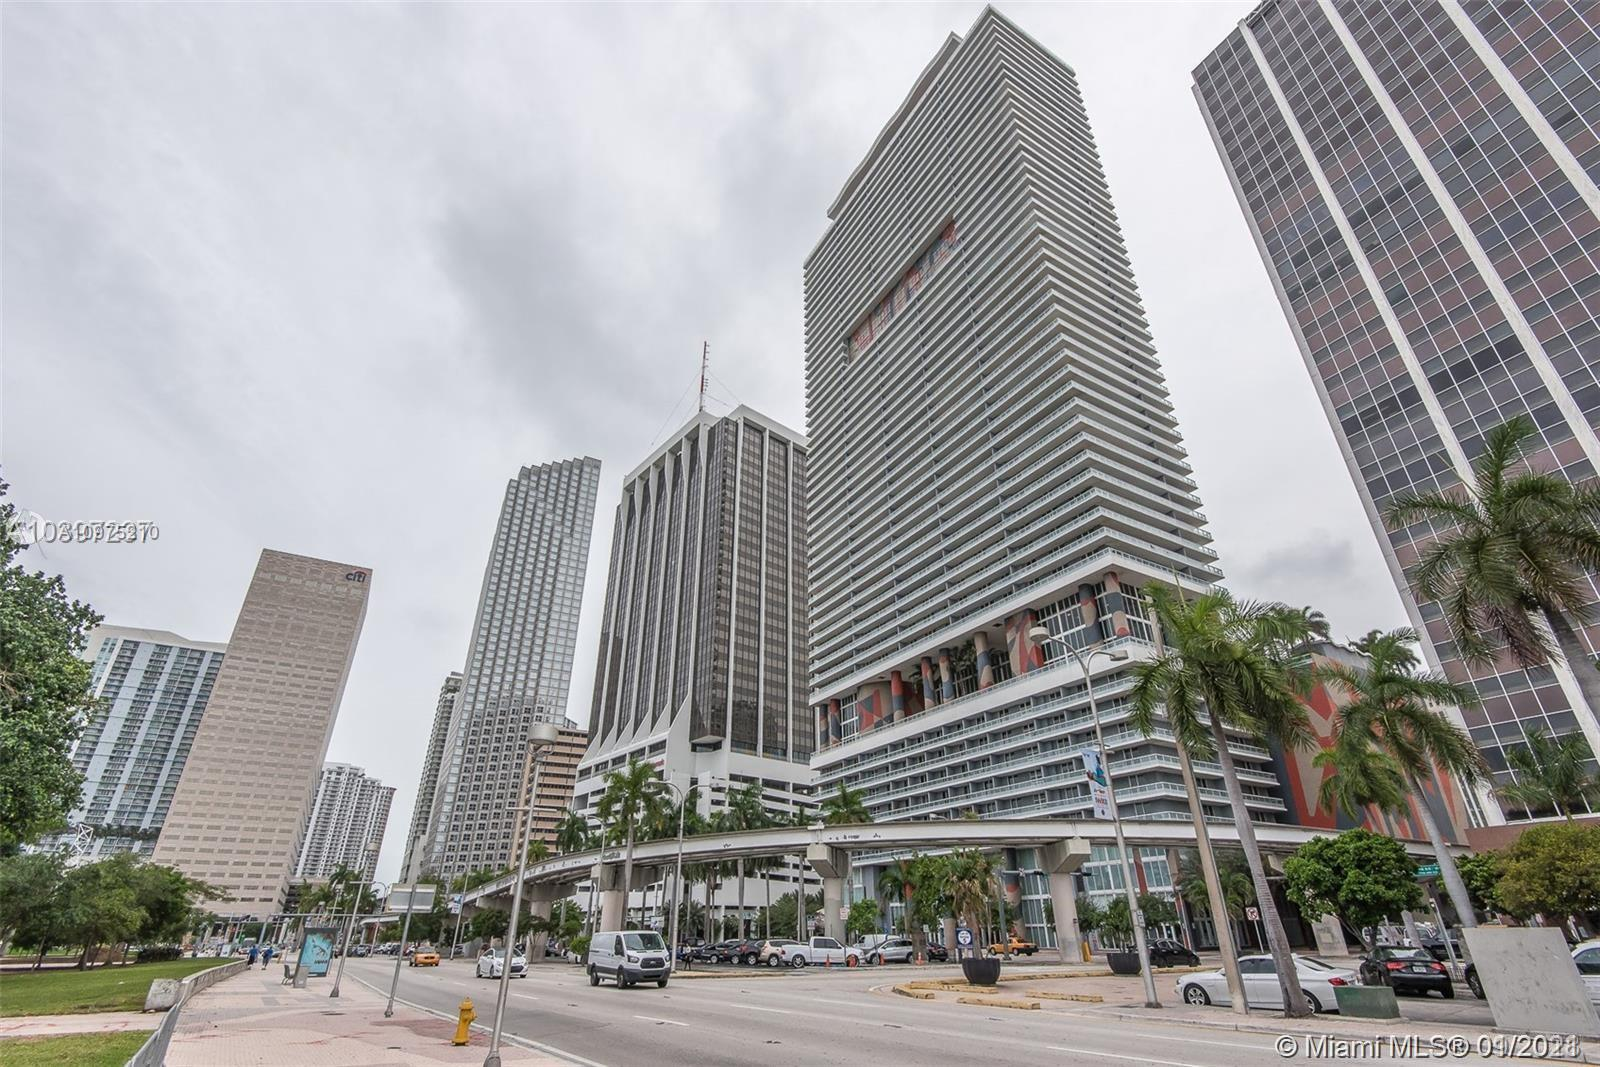 50 BISCAYNE CONDOMINIUM. SPACIOUS ONE BEDROOM PLUS DEN WITH MARBLE FLOORS. BEAUTIFUL OPEN CITY VIEW.